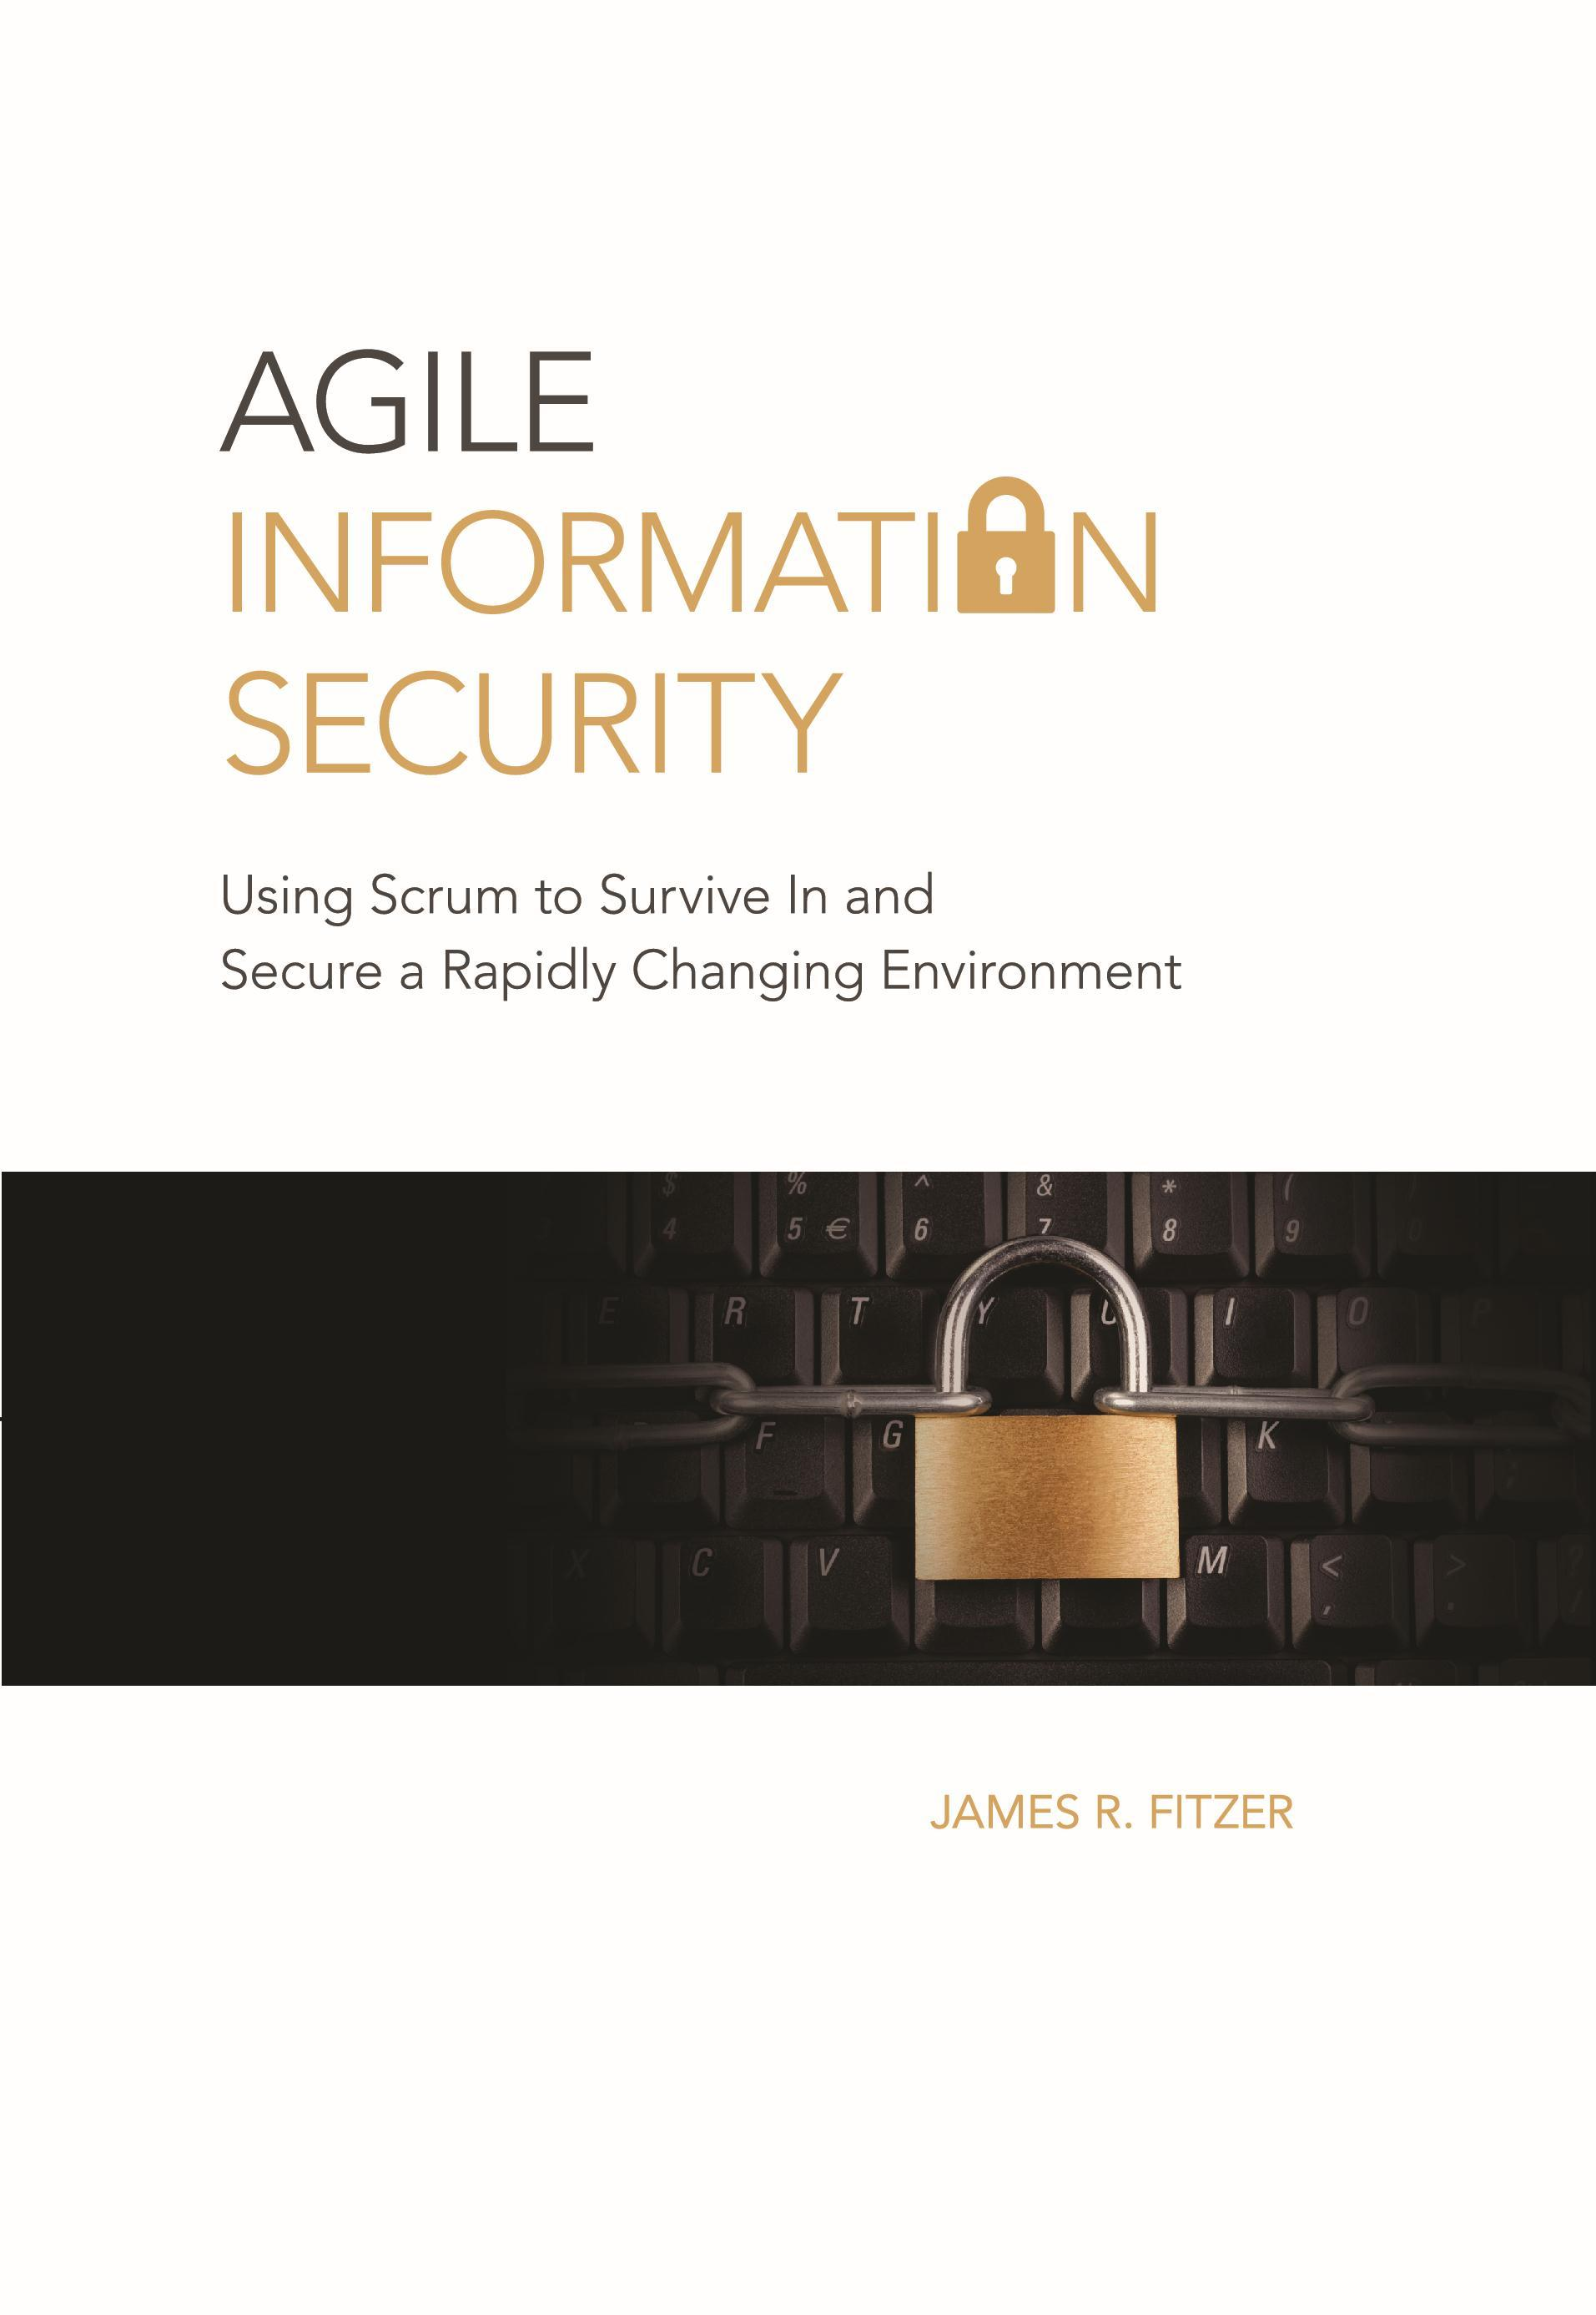 Agile Information Security: Using Scrum to Survive in and Secure a Rapidly Changing Environment James R. Fitzer